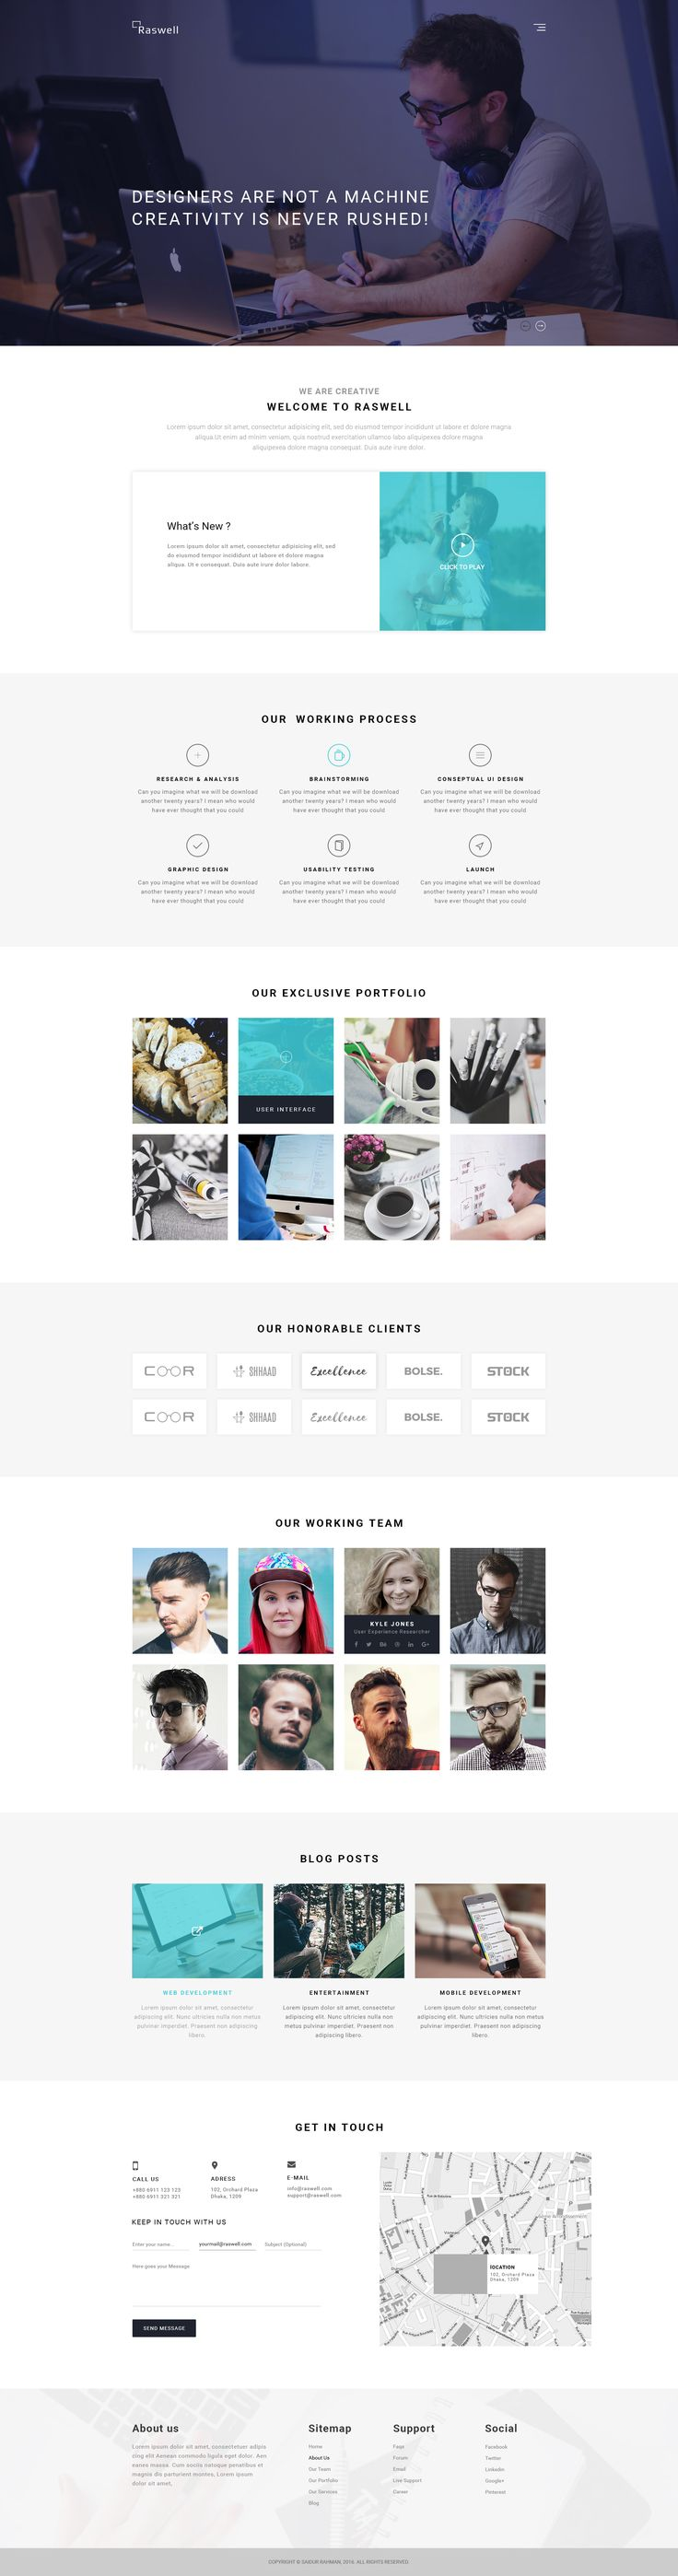 Raswell- One Page Creative PSD Template by creativezoone | ThemeForest